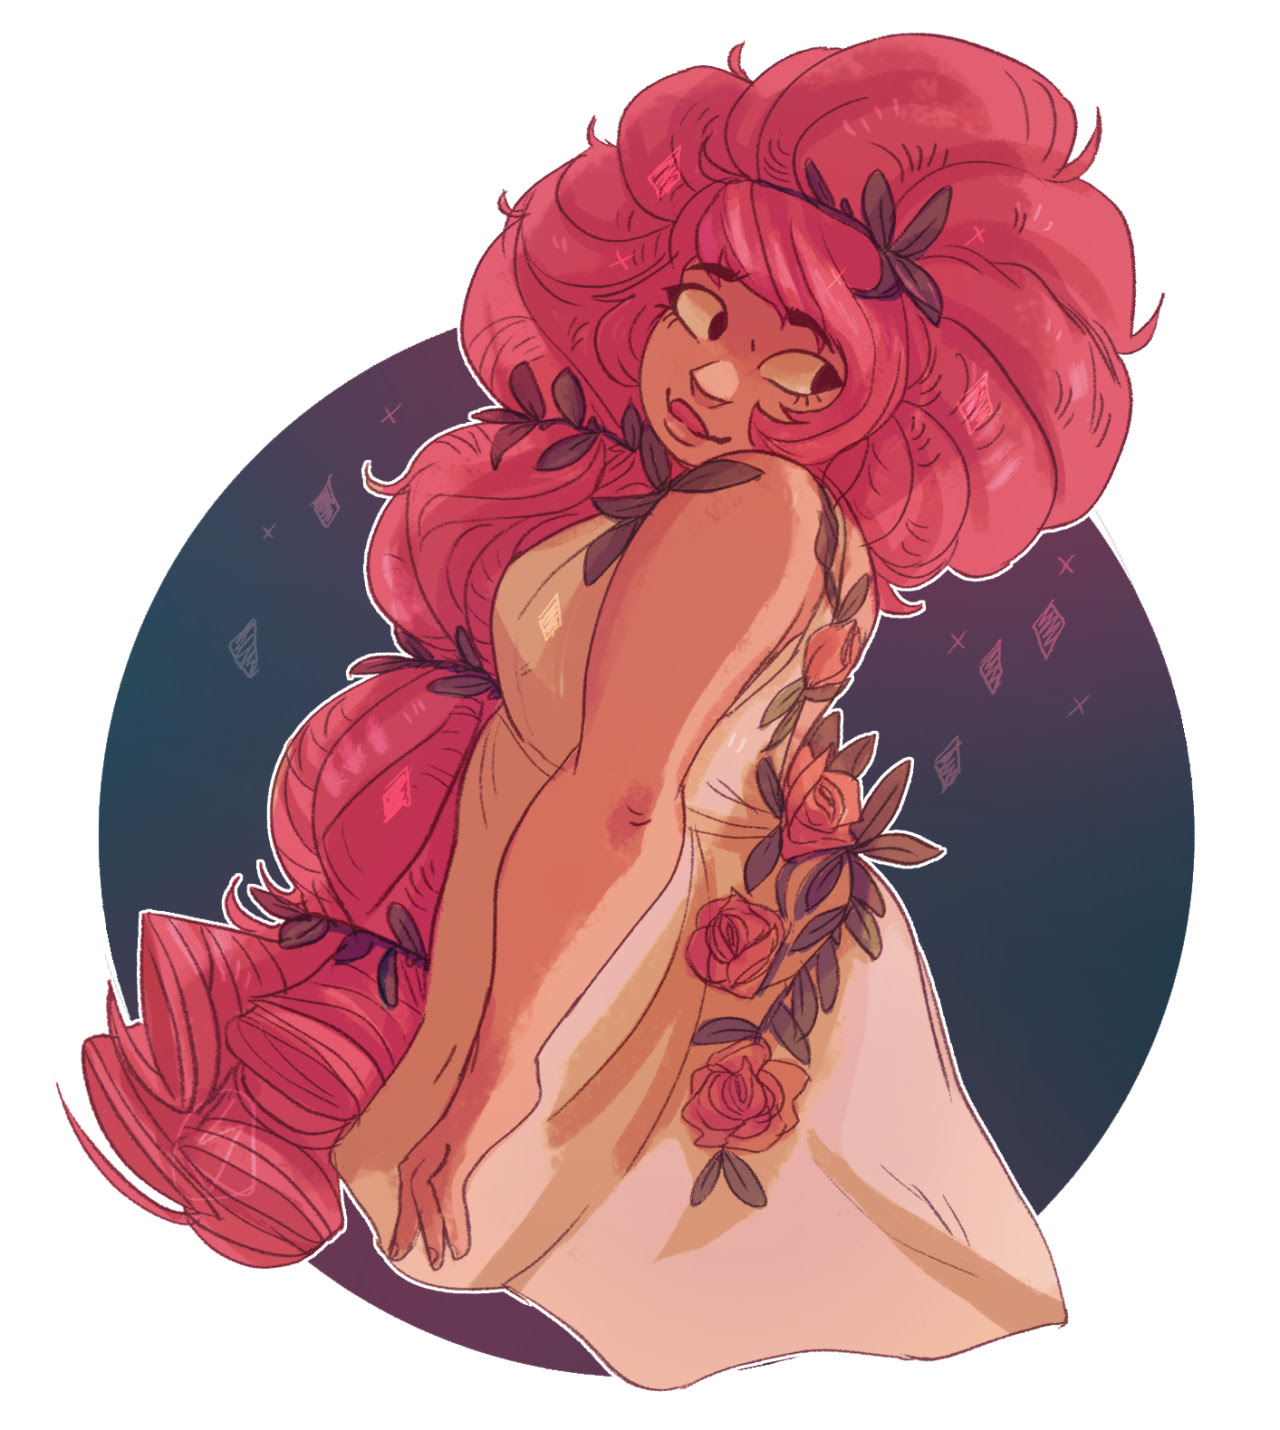 Warm up Rose in this dress